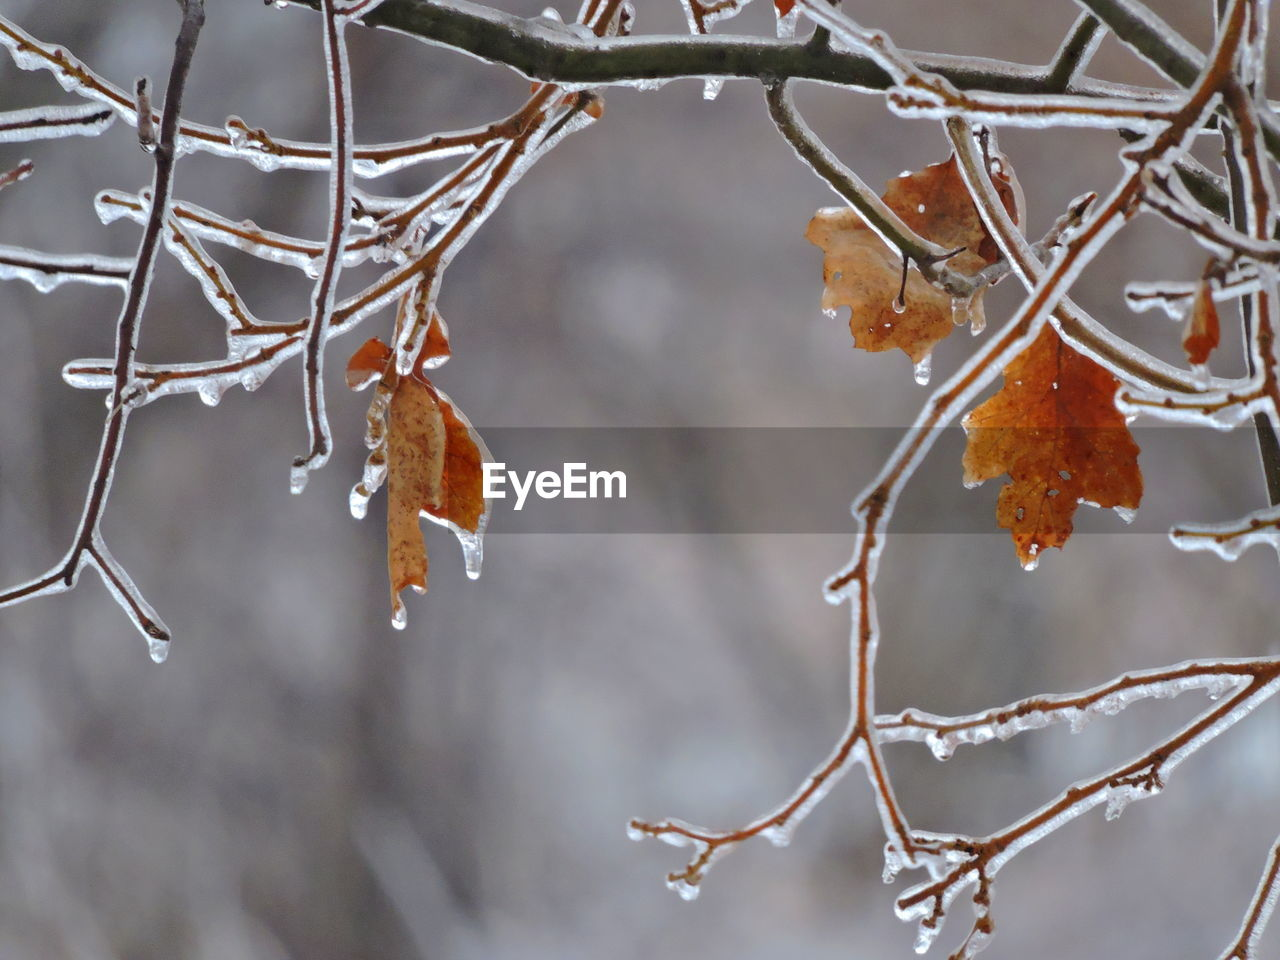 focus on foreground, close-up, plant, winter, cold temperature, beauty in nature, no people, snow, day, tree, nature, branch, change, ice, dry, autumn, twig, plant part, frozen, outdoors, leaves, dead plant